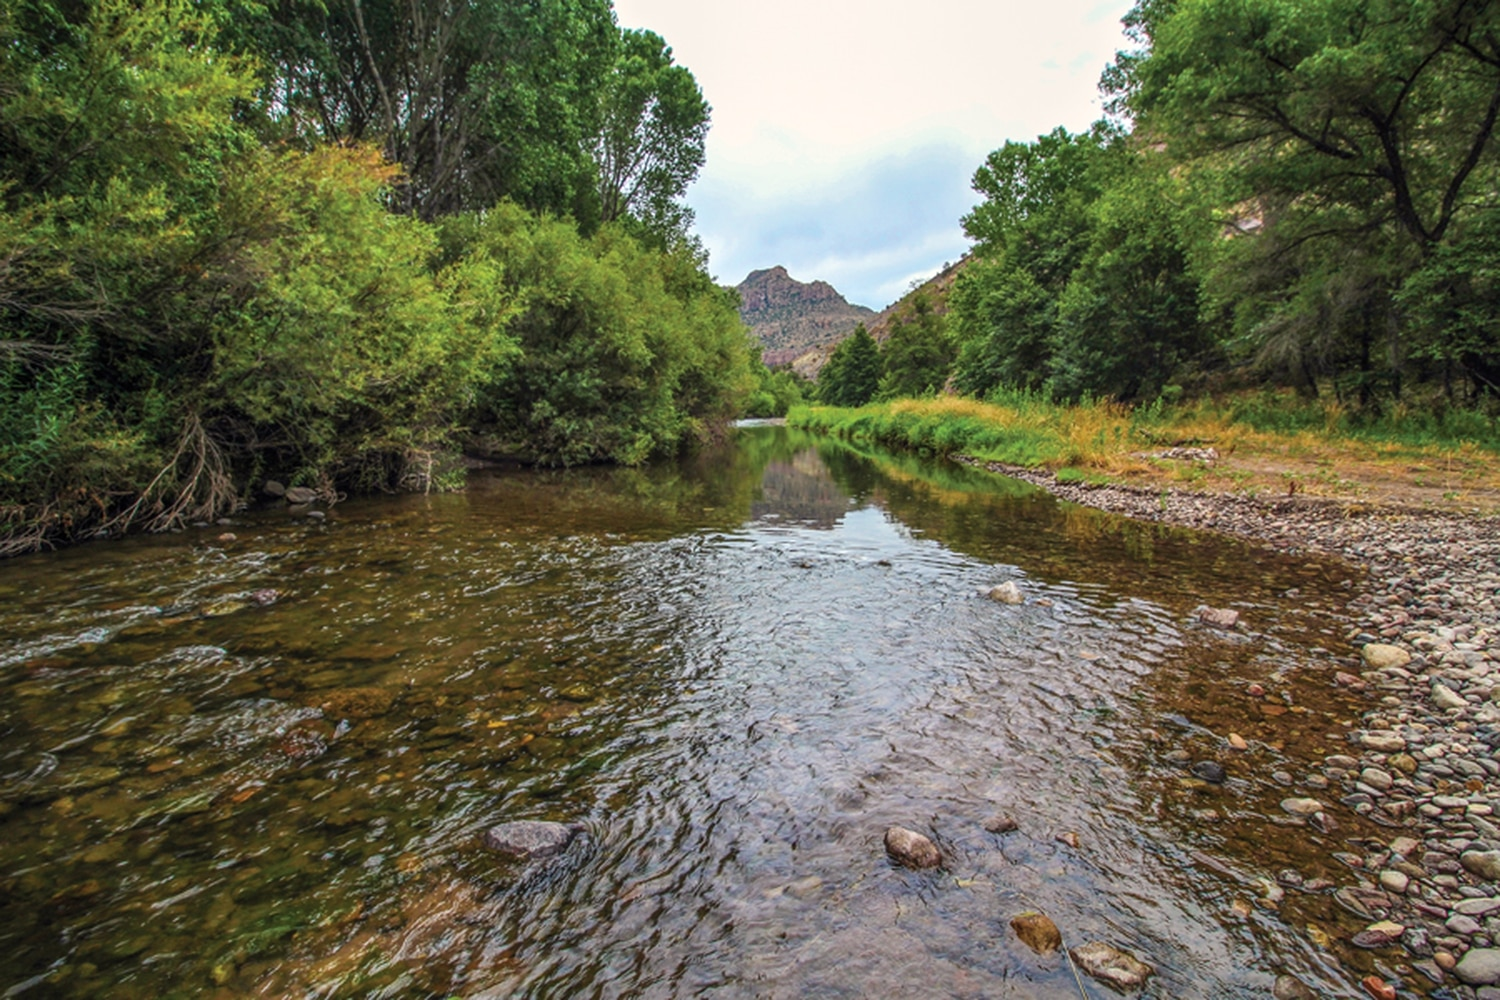 Although this stretch of the Gila River is outside the designated wilderness area, many consider it a de facto wilderness.